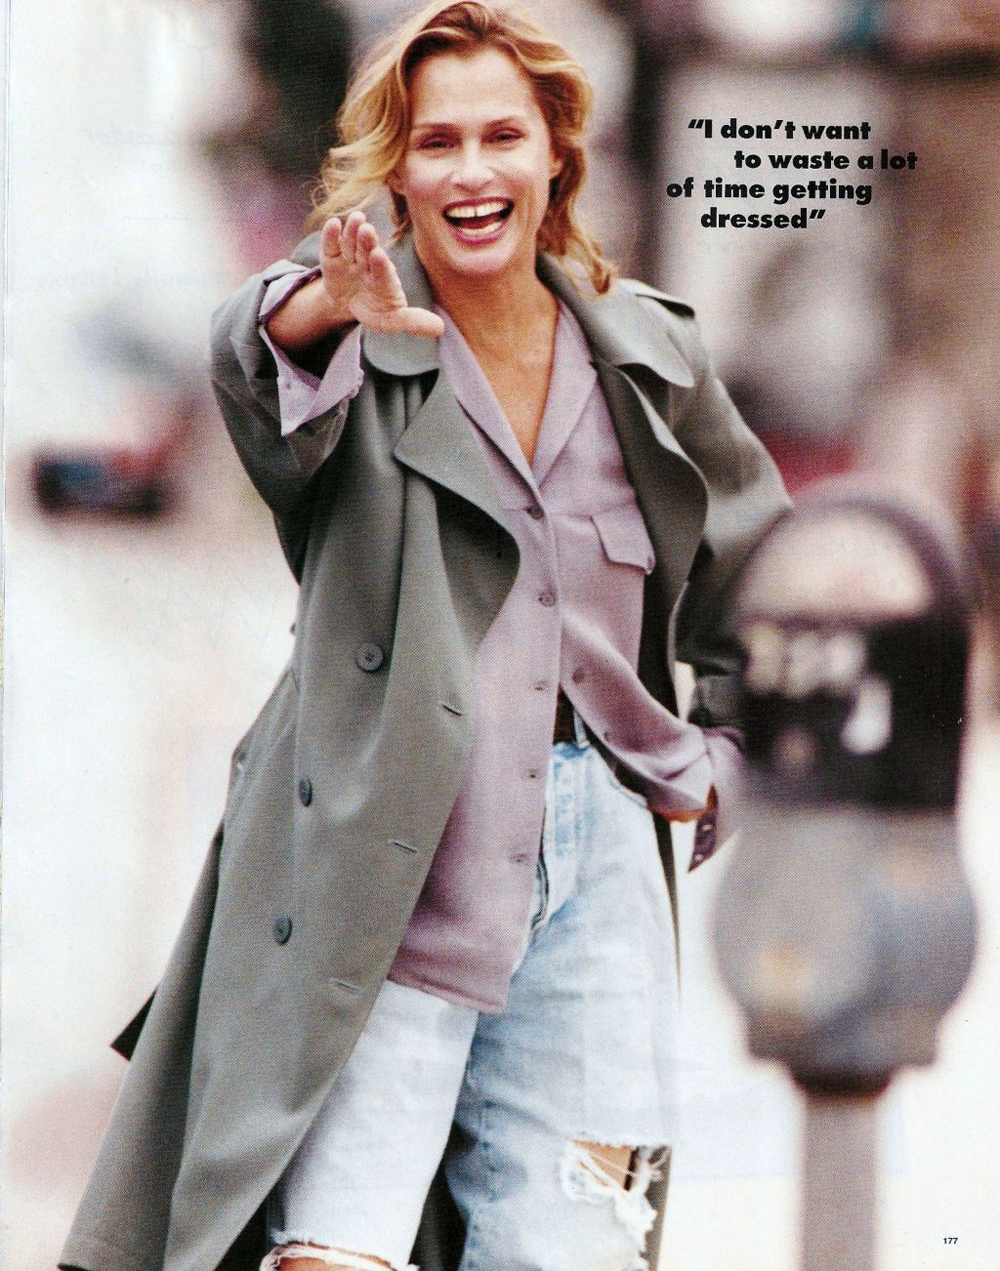 Elle US February 1994 via www.fashionedbylove.co.uk